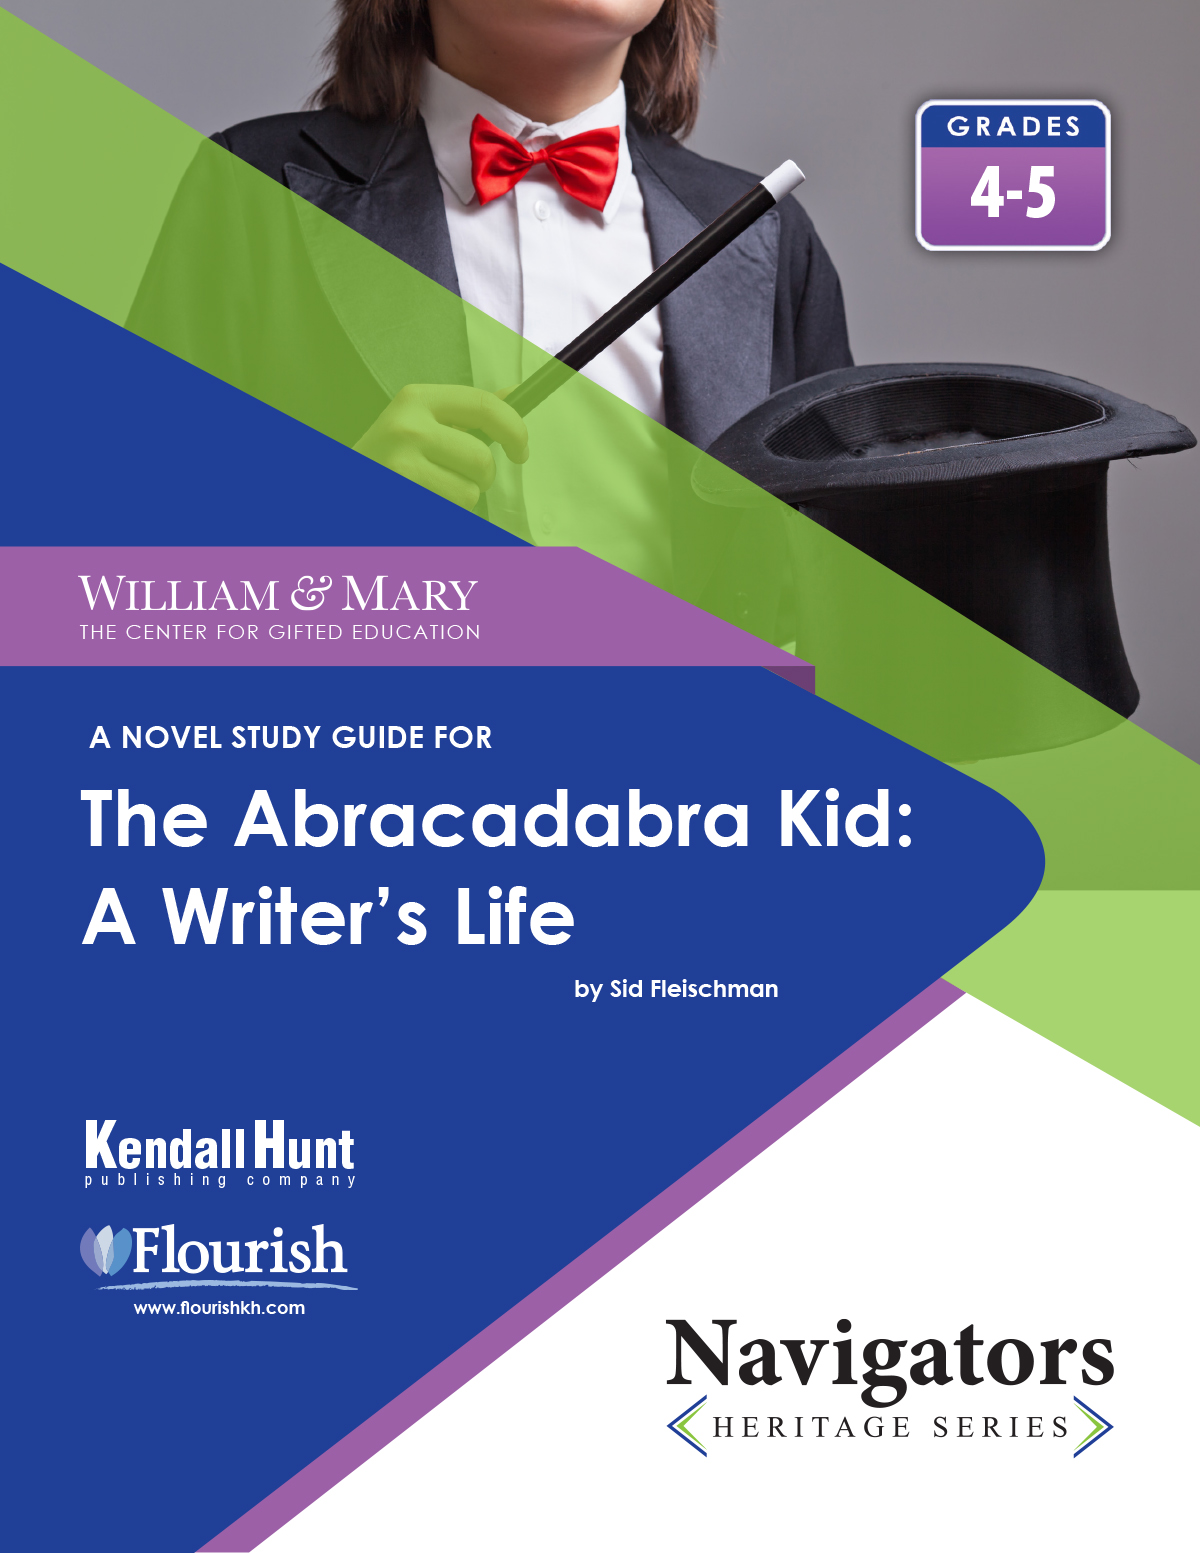 William & Mary Navigator Abracadabra Kid